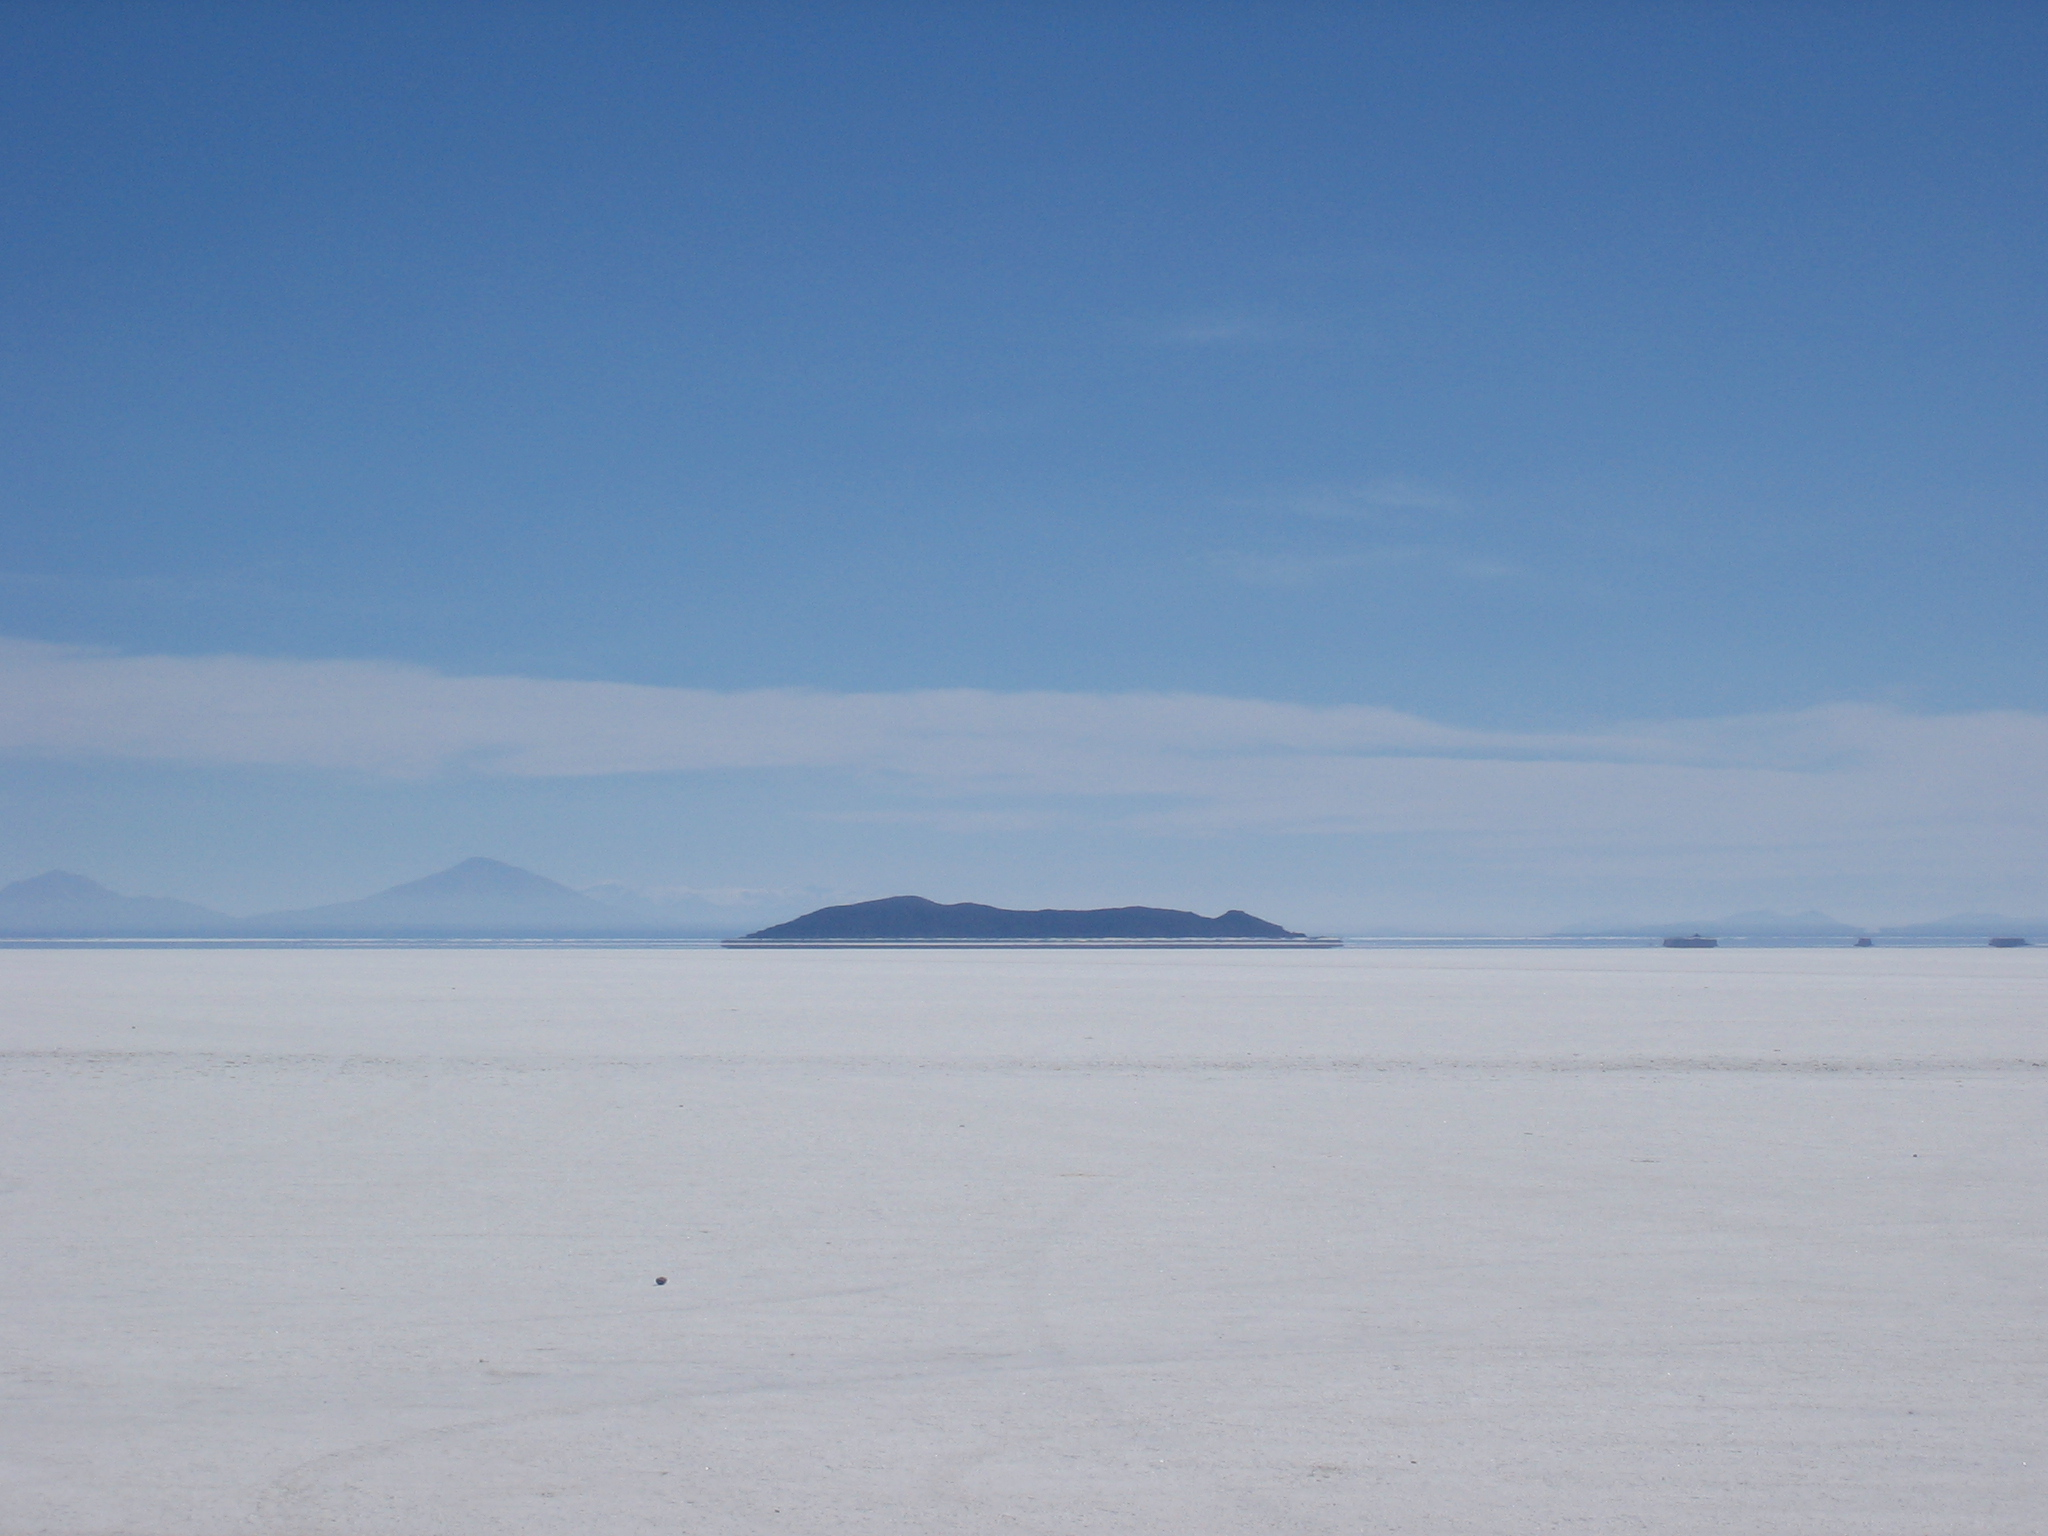 http://upload.wikimedia.org/wikipedia/commons/6/6c/Salar_de_Uyuni_3.jpg